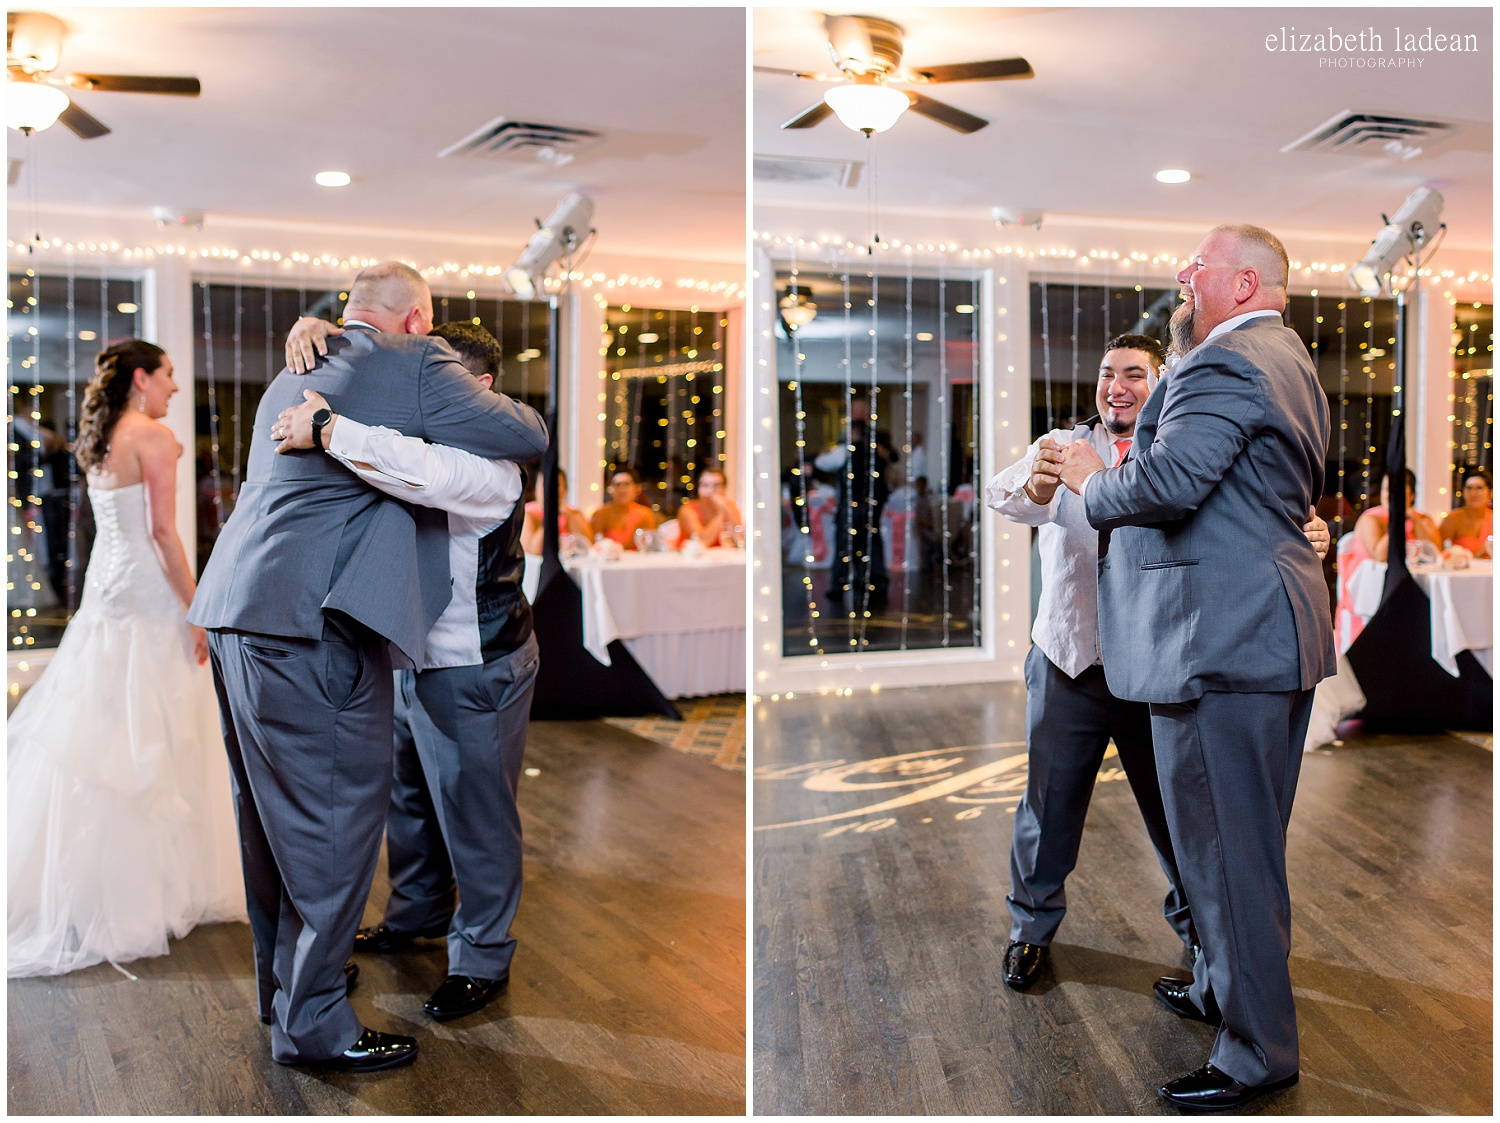 -behind-the-scenes-of-a-wedding-photographer-2018-elizabeth-ladean-photography-photo_3575.jpg